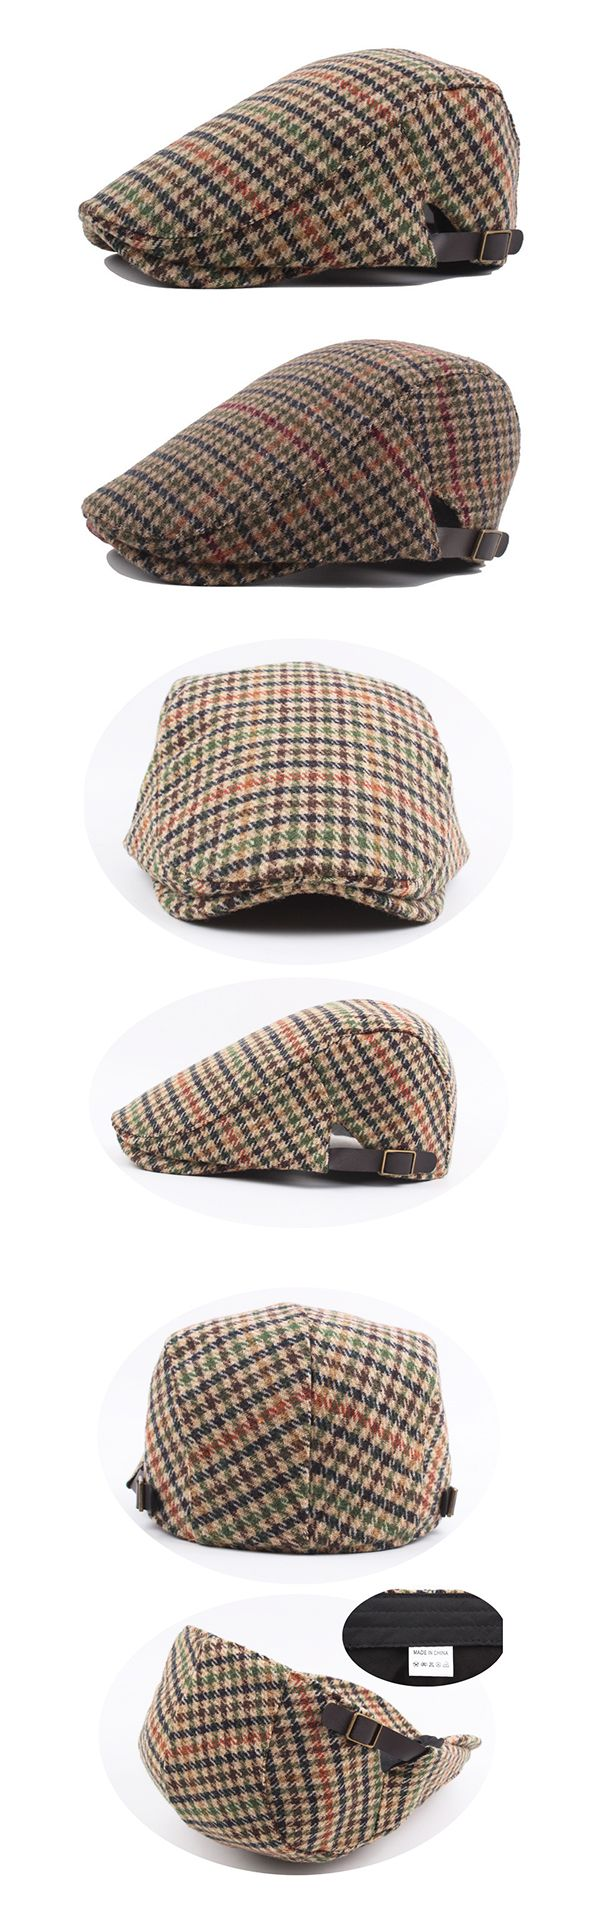 US$8.23 (47% OFF) Fall&Winter Fashion: Mens Beret Cap: British Style & Grid Pattern / Warm / Casual / Breathable